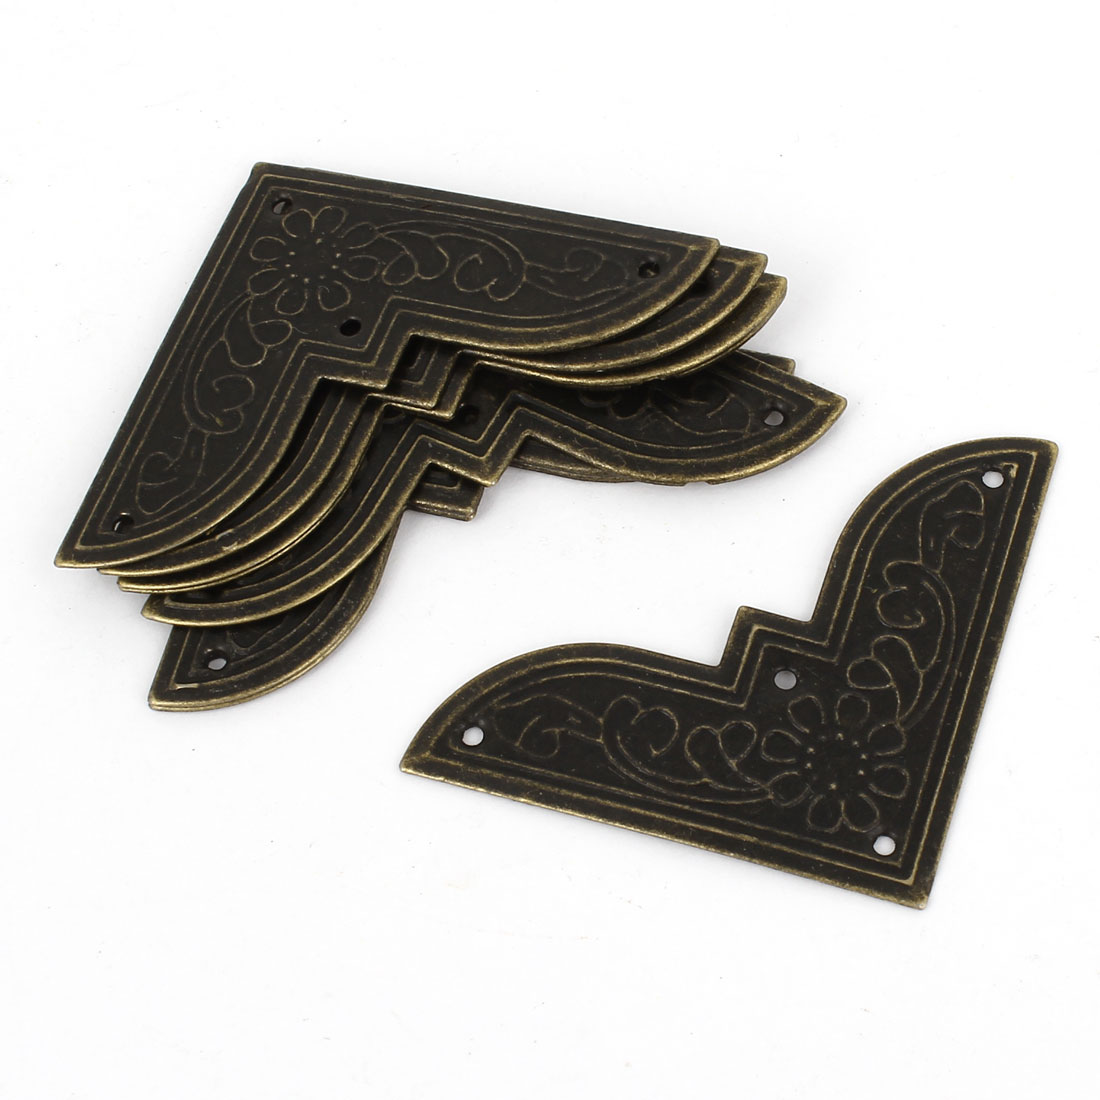 8pcs Hardware Antique Style Archaize Fillet 45mm x 45mm for Wooden Gift Box Corner Decor